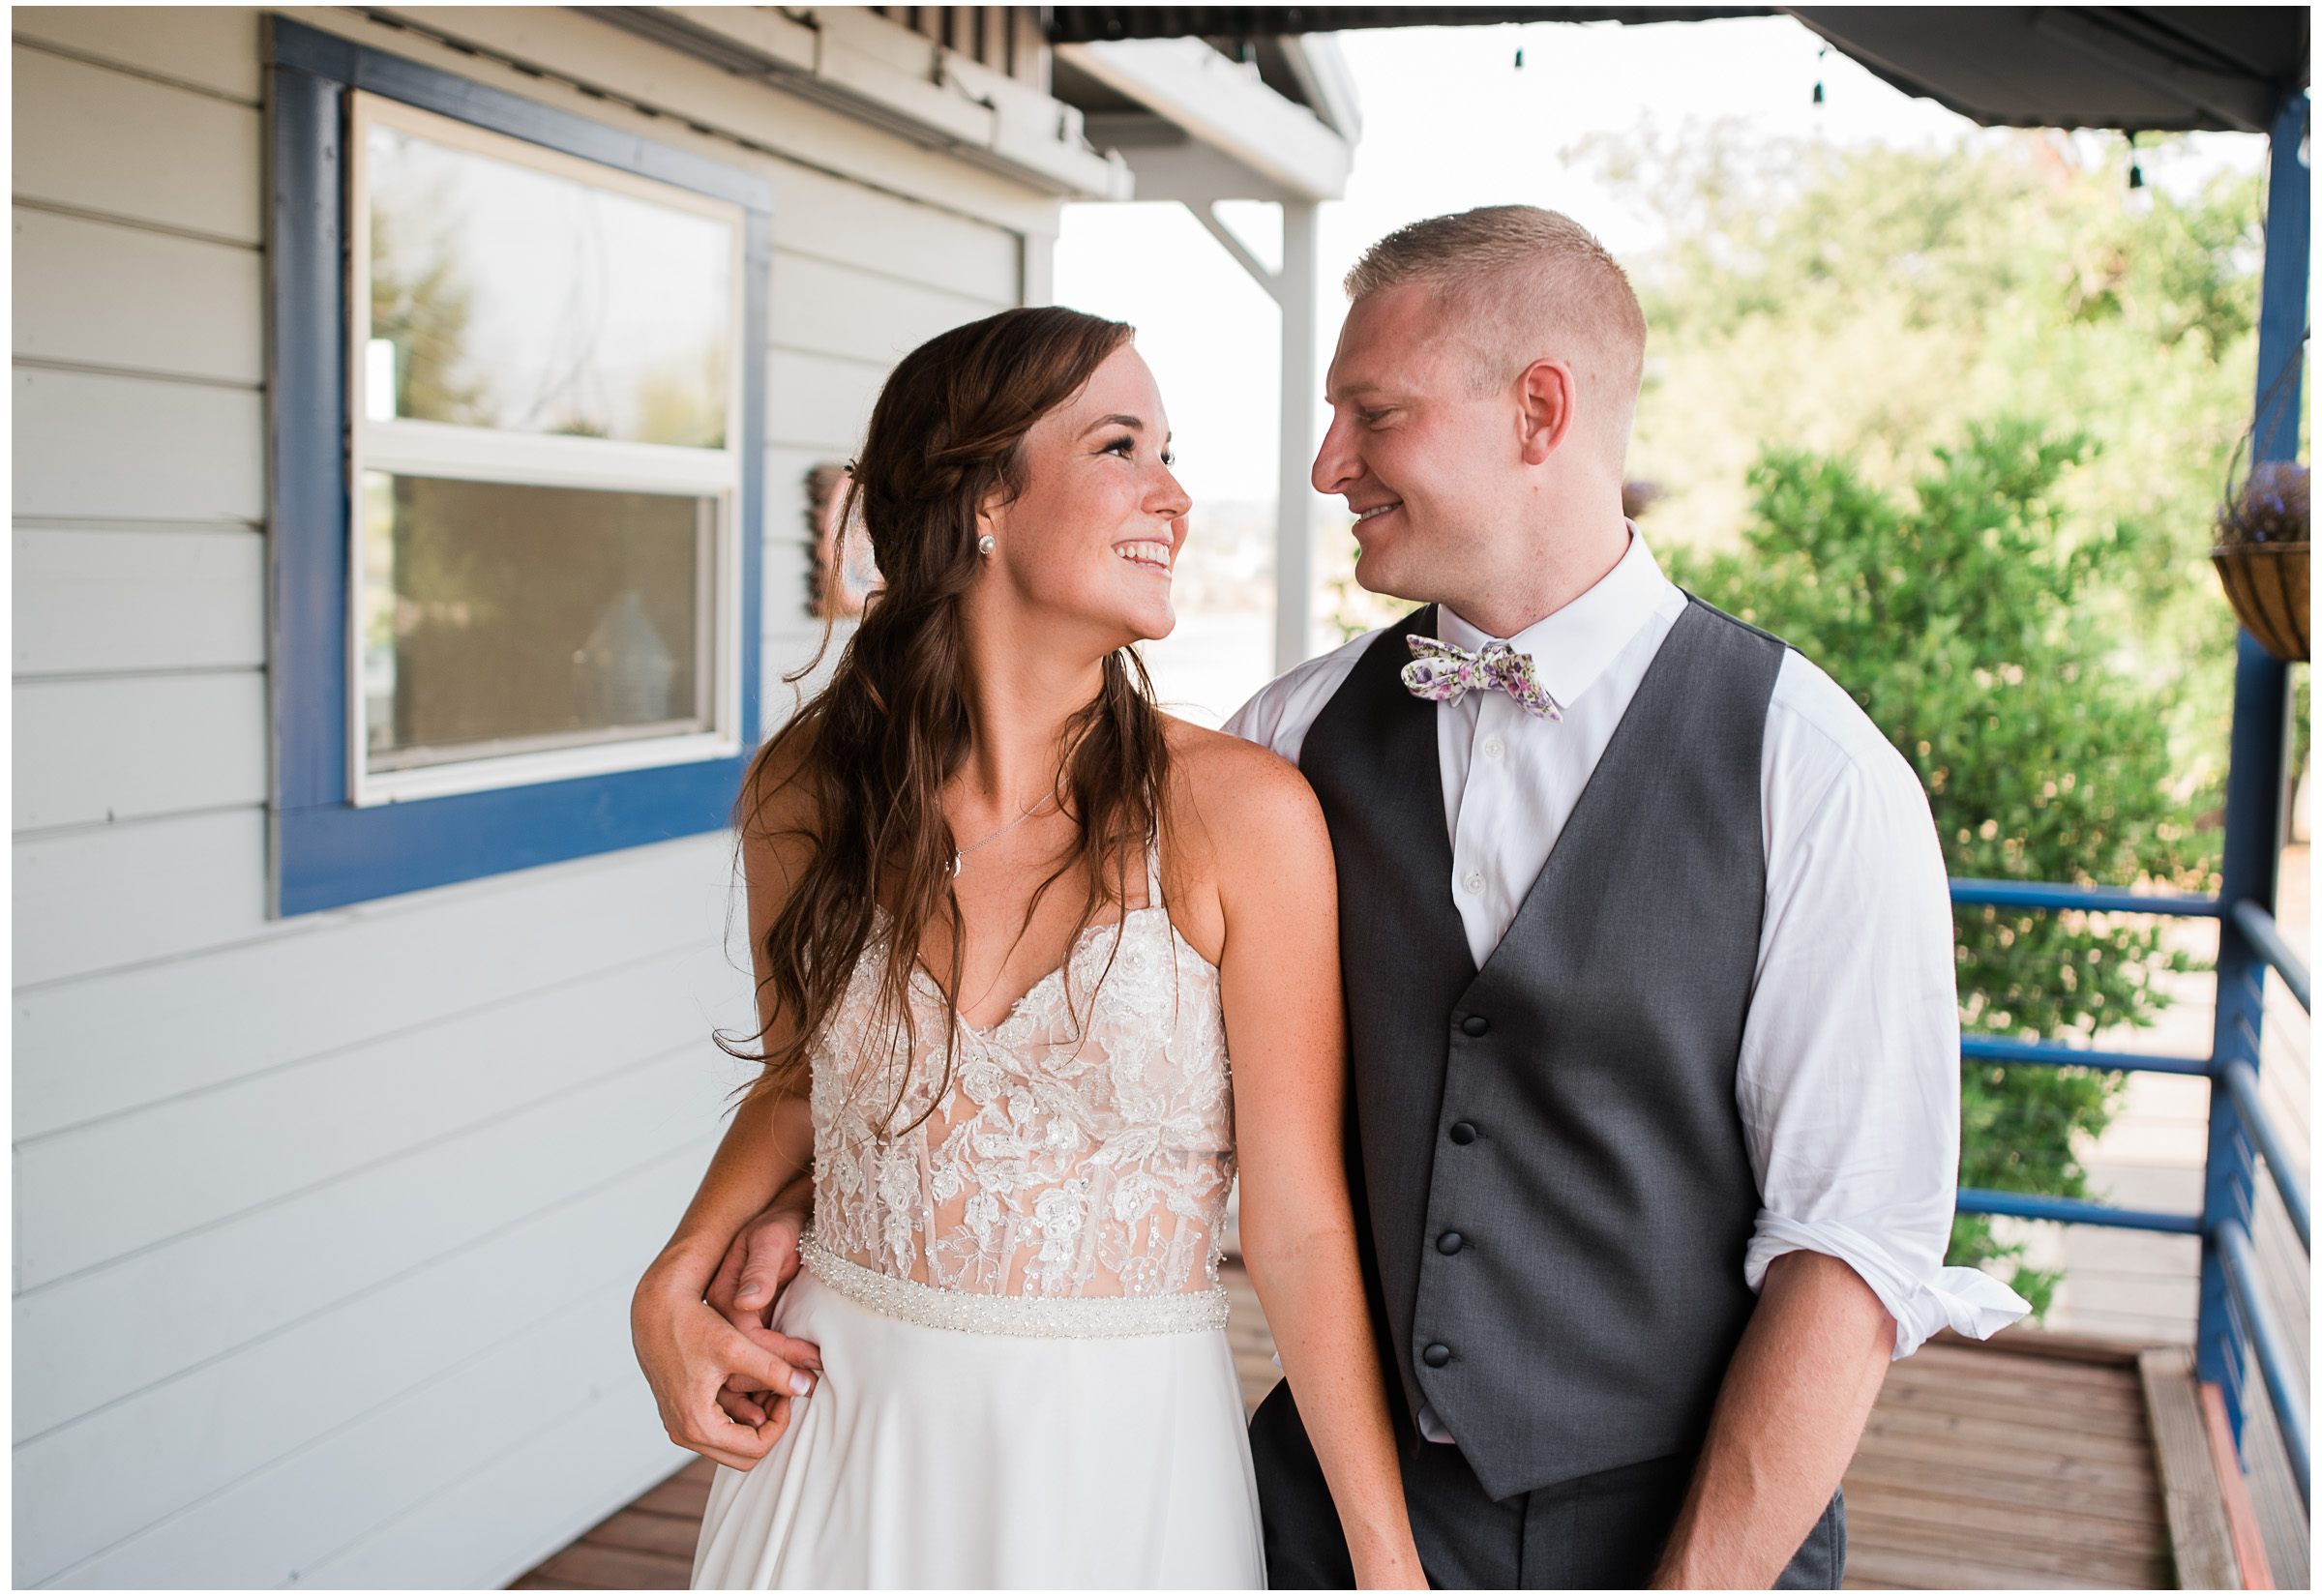 Loomis Wedding - Sacramento Photographer - Blue Goose - Justin Wilcox Photography - 30.jpg